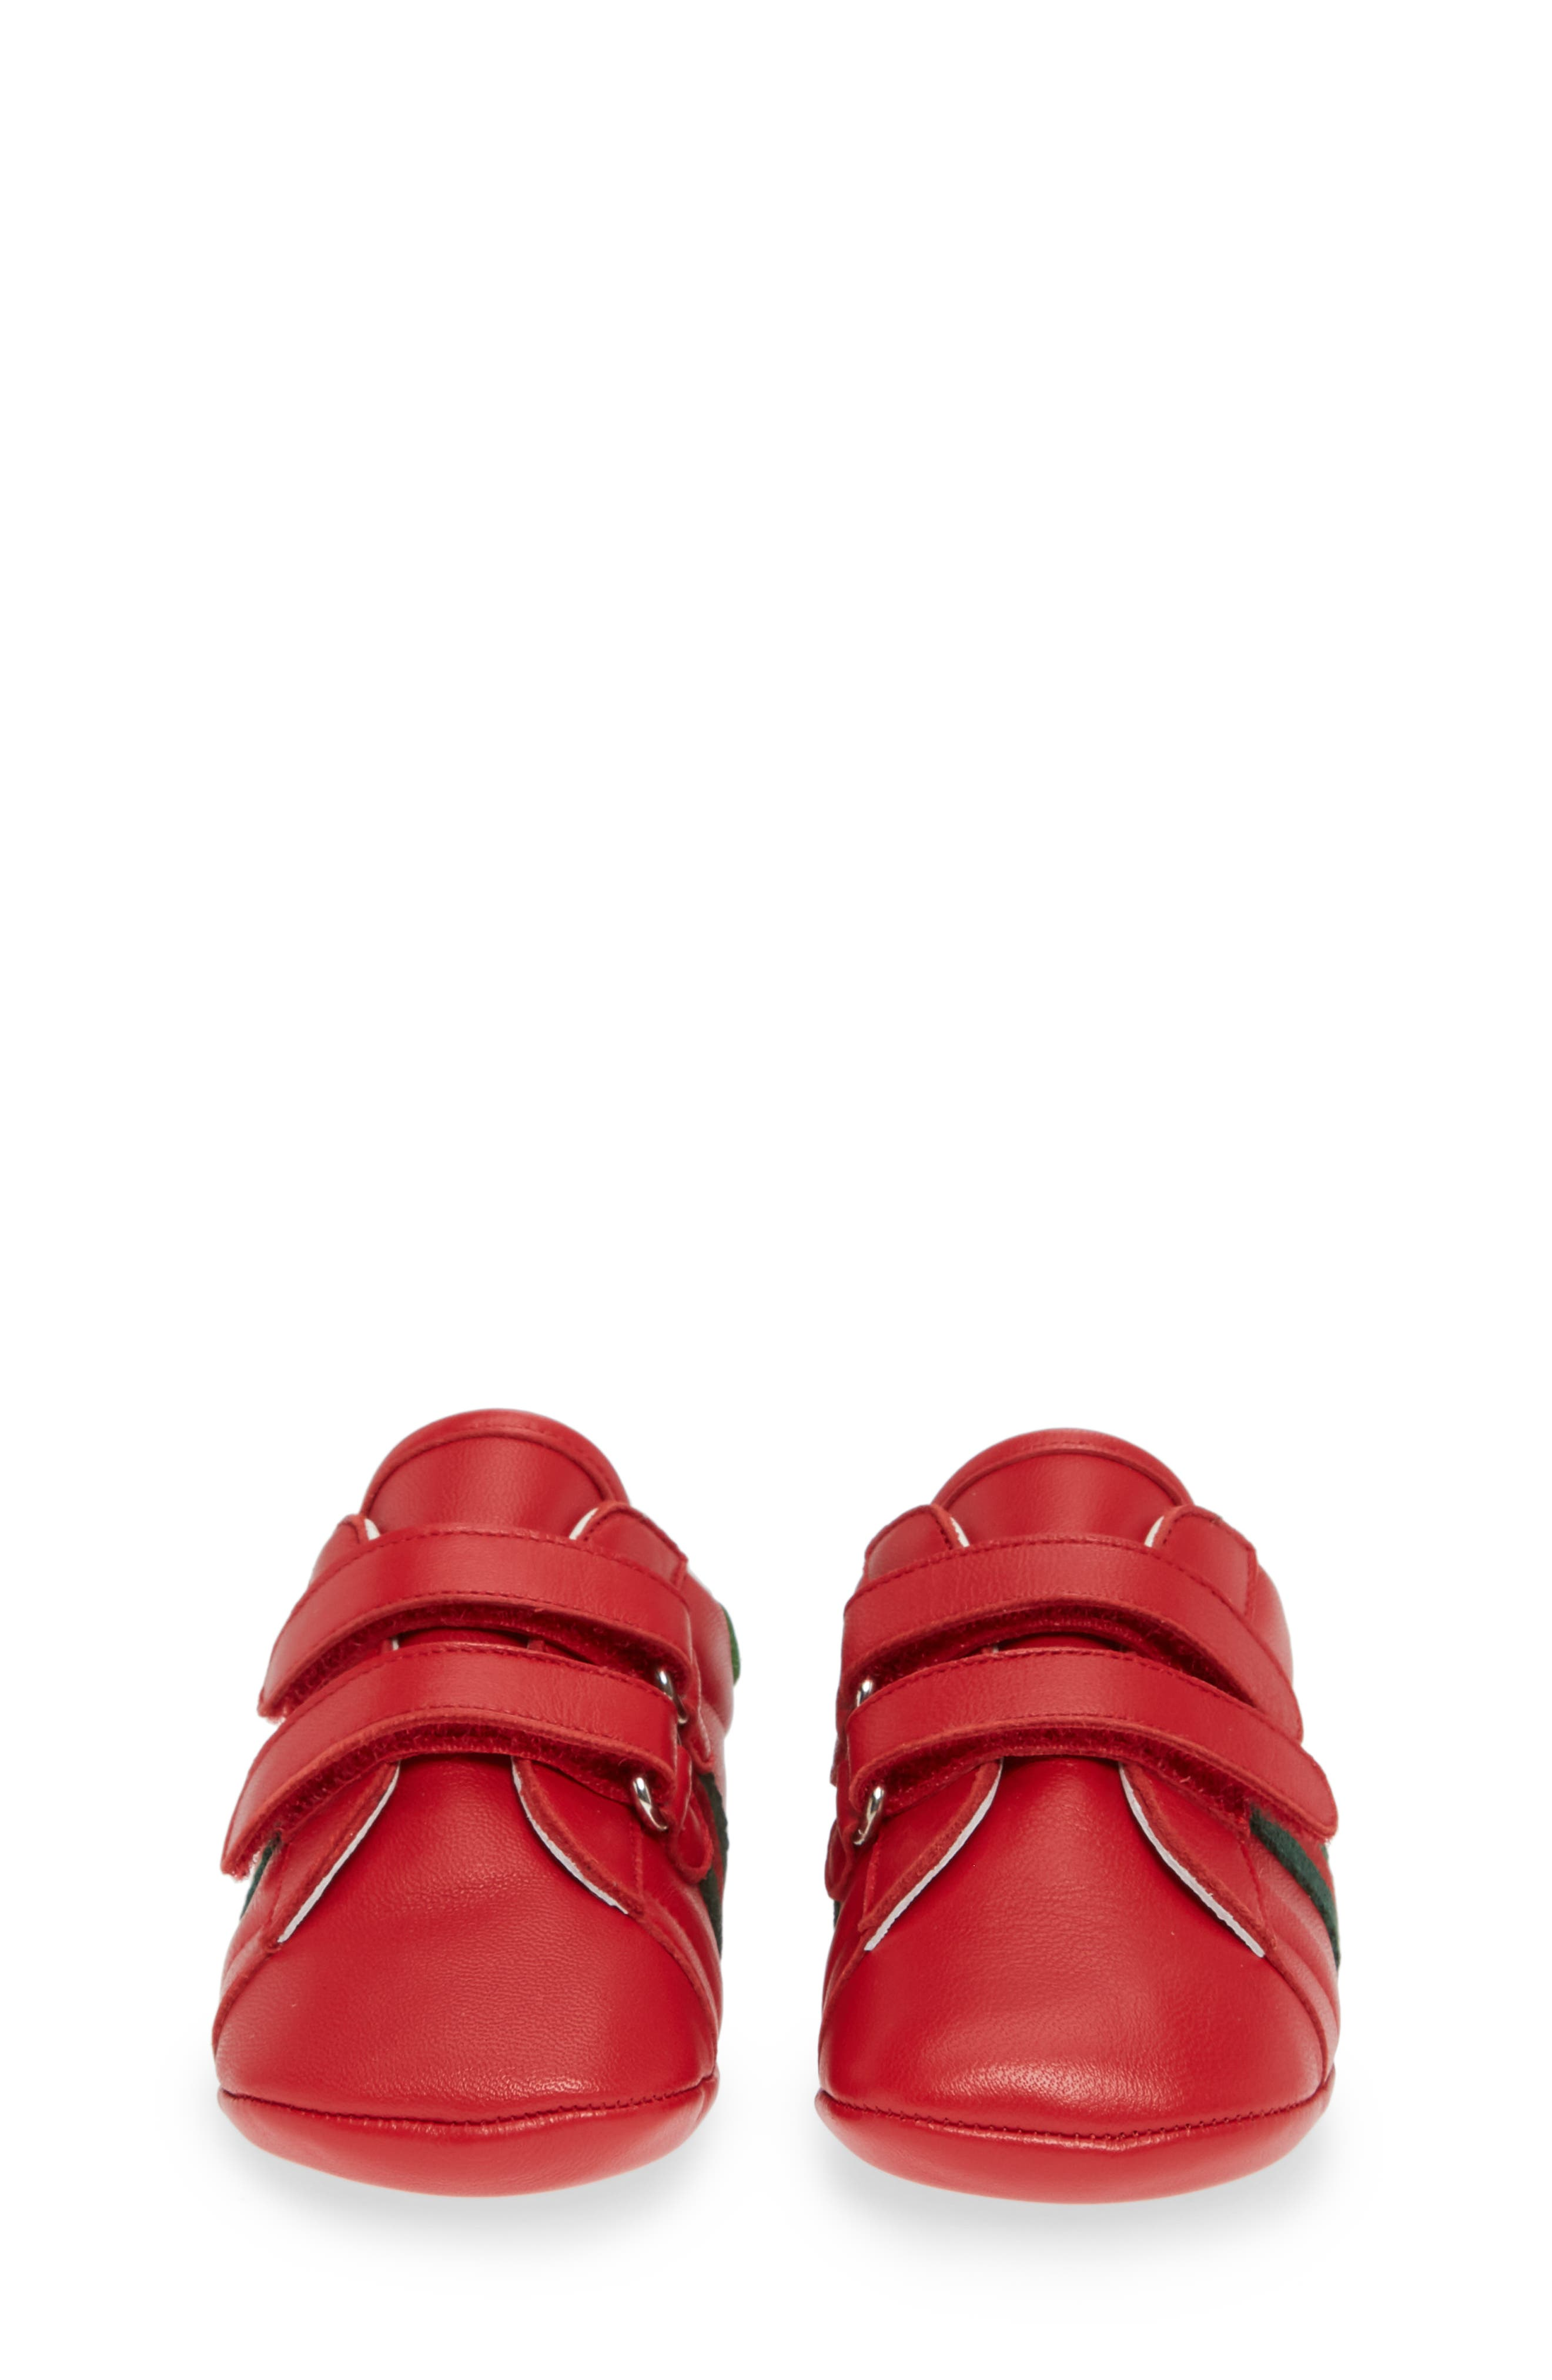 Ace Crib Shoe,                             Alternate thumbnail 5, color,                             RED